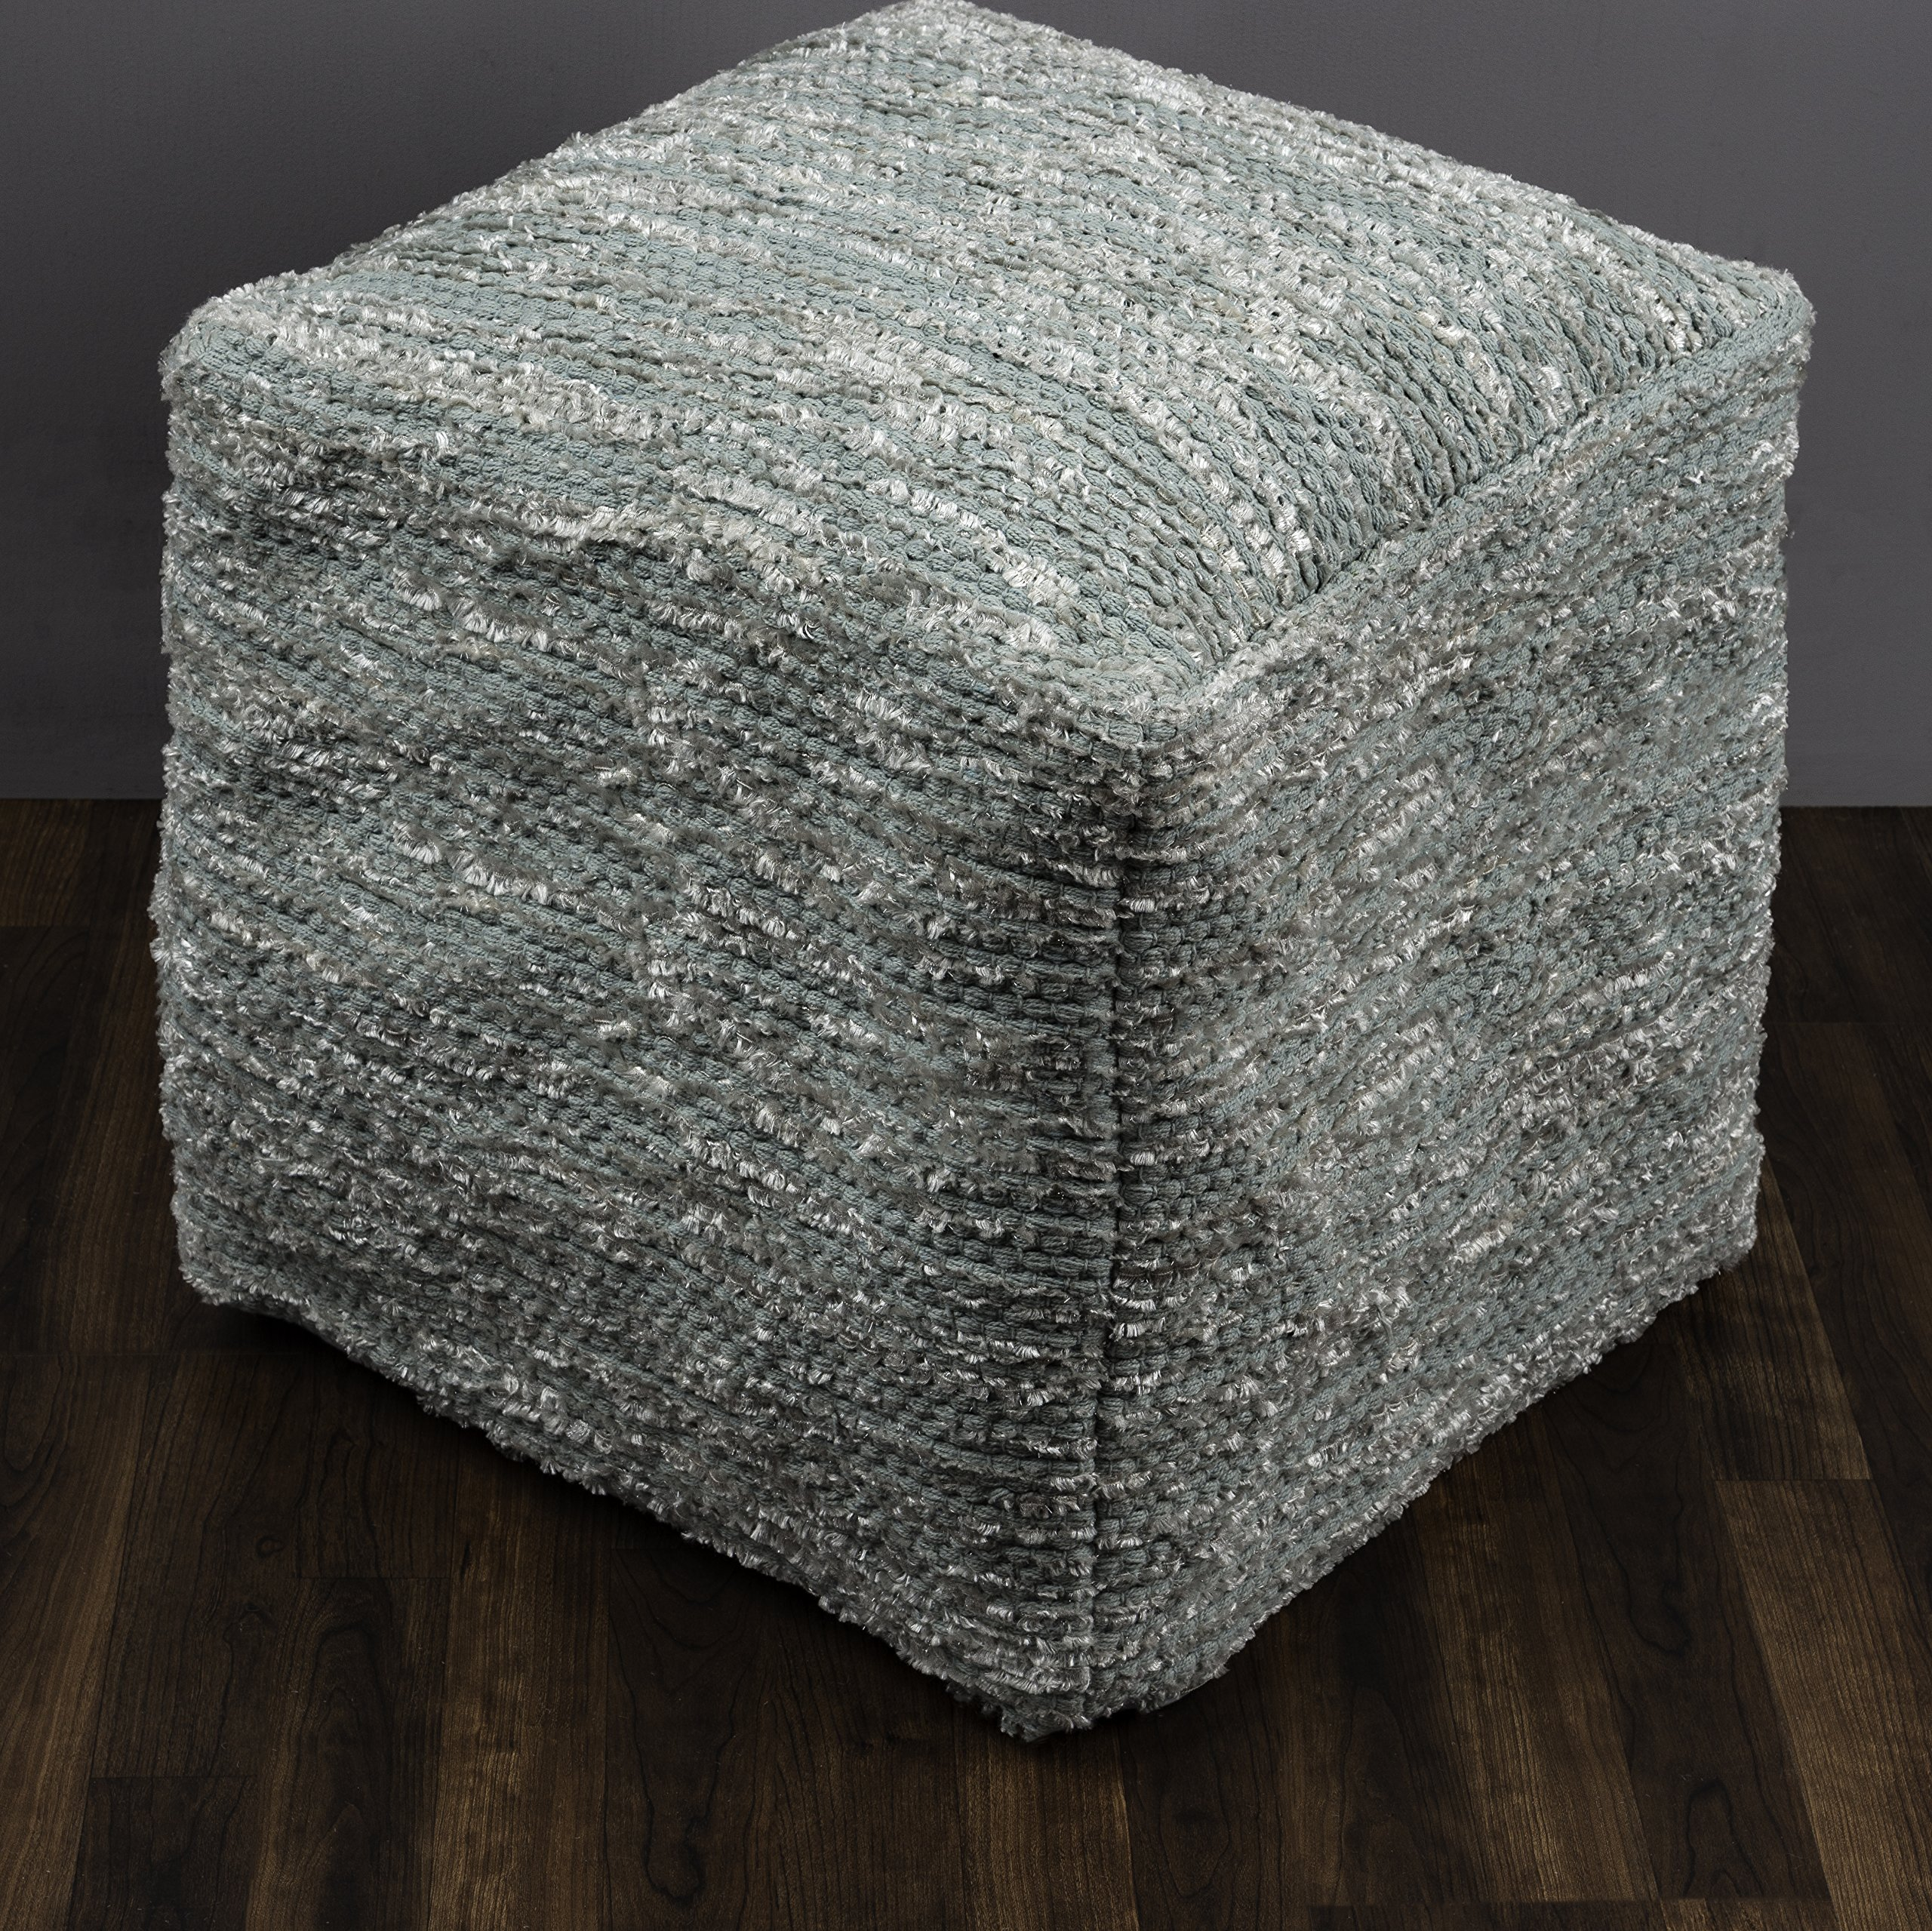 Rizzy Home POFP1083900840002 Solid Square Pouf,Spa Blue